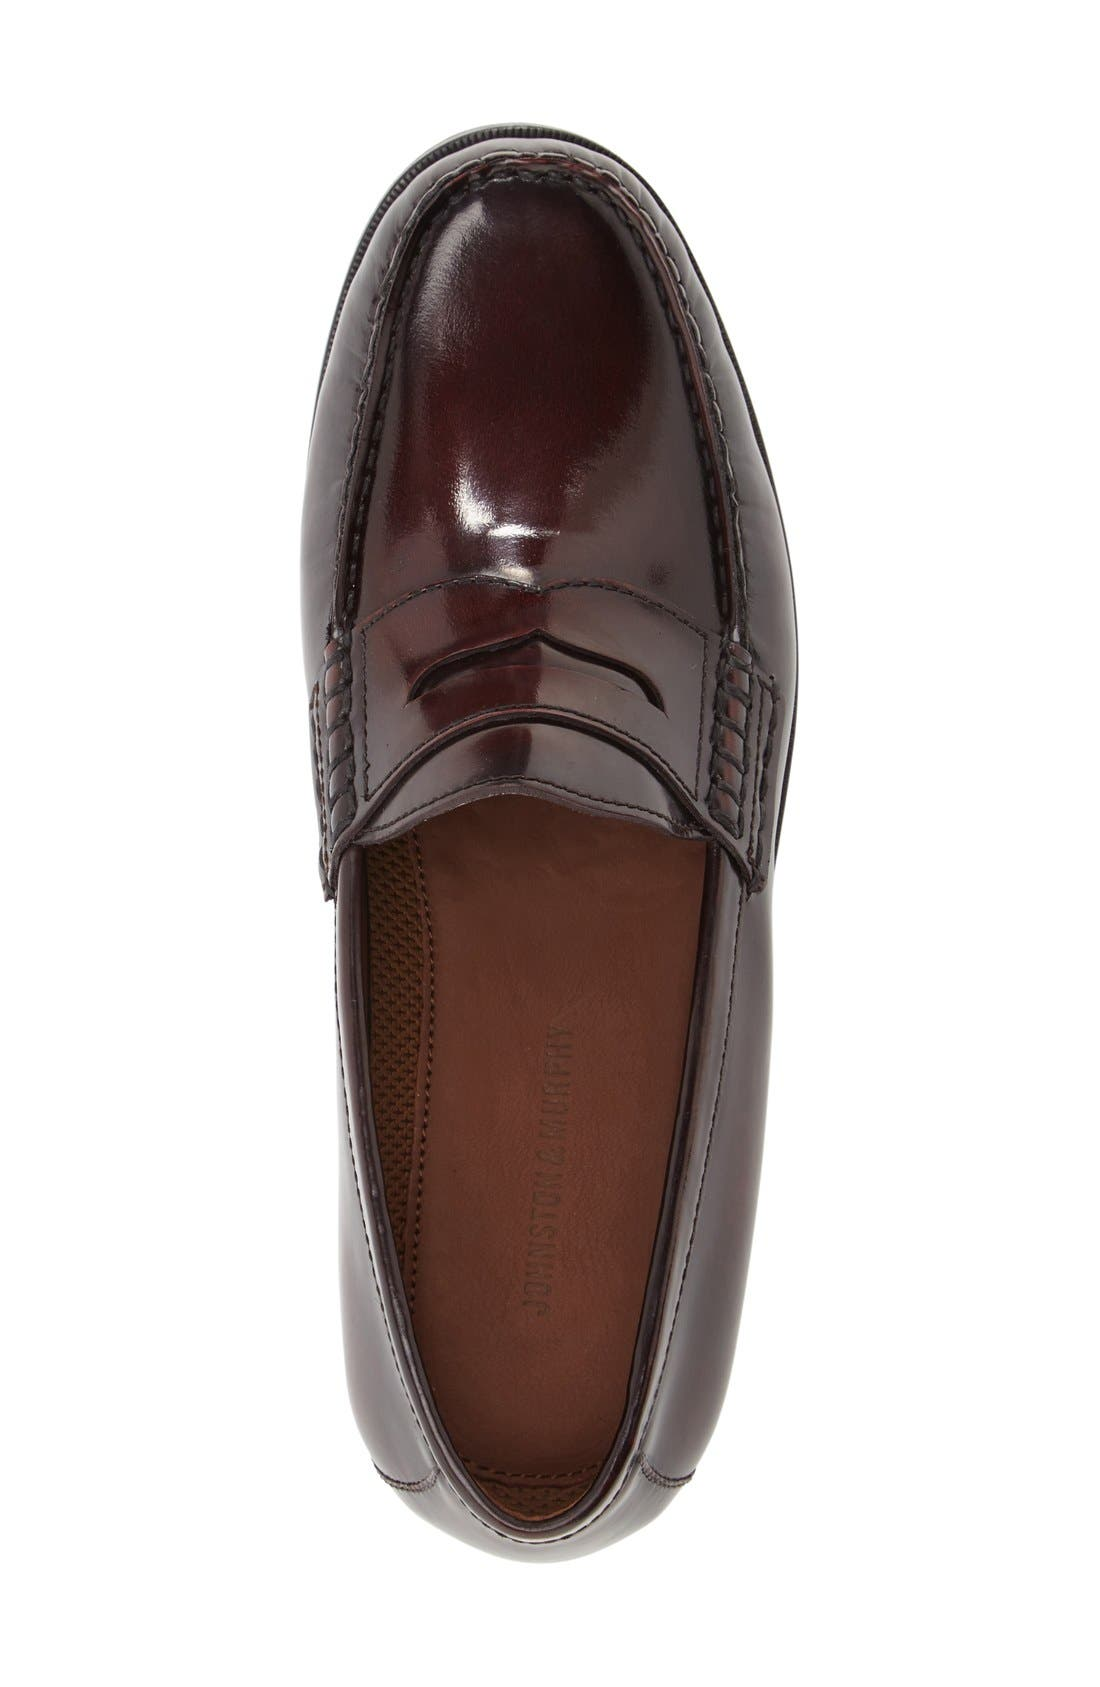 Pannell Penny Loafer,                             Alternate thumbnail 3, color,                             Burgundy Leather